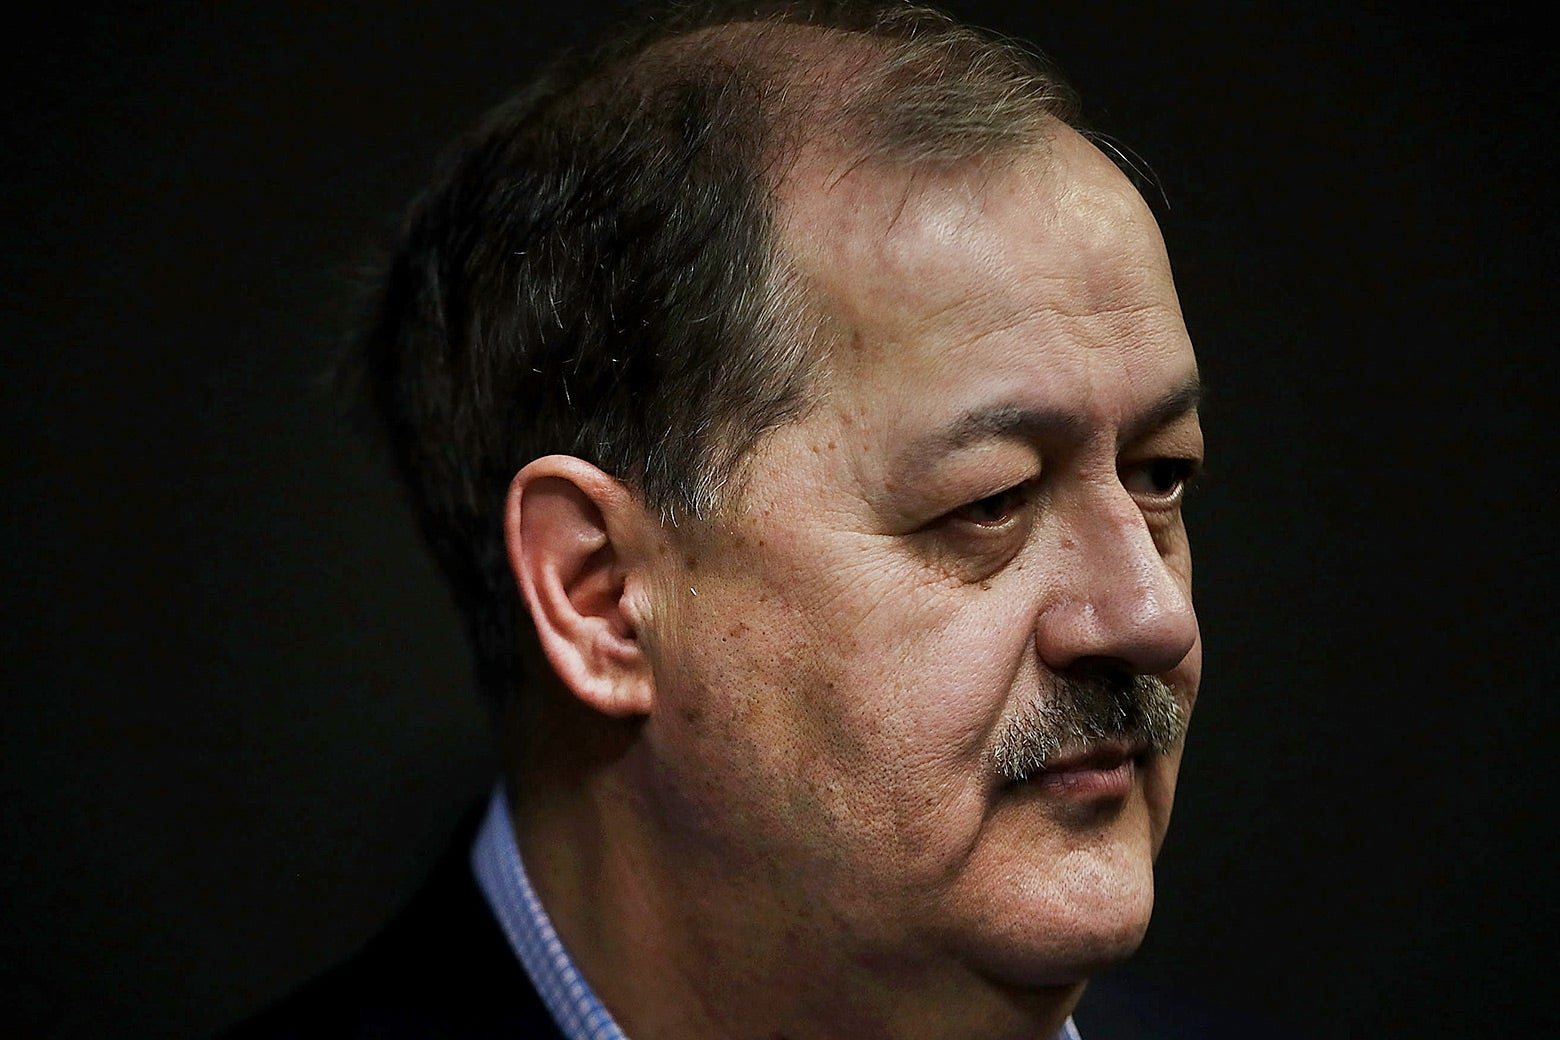 U.S. Senate candidate Don Blankenship speaks at a town hall meeting at West Virginia University on March 1 in Morgantown.